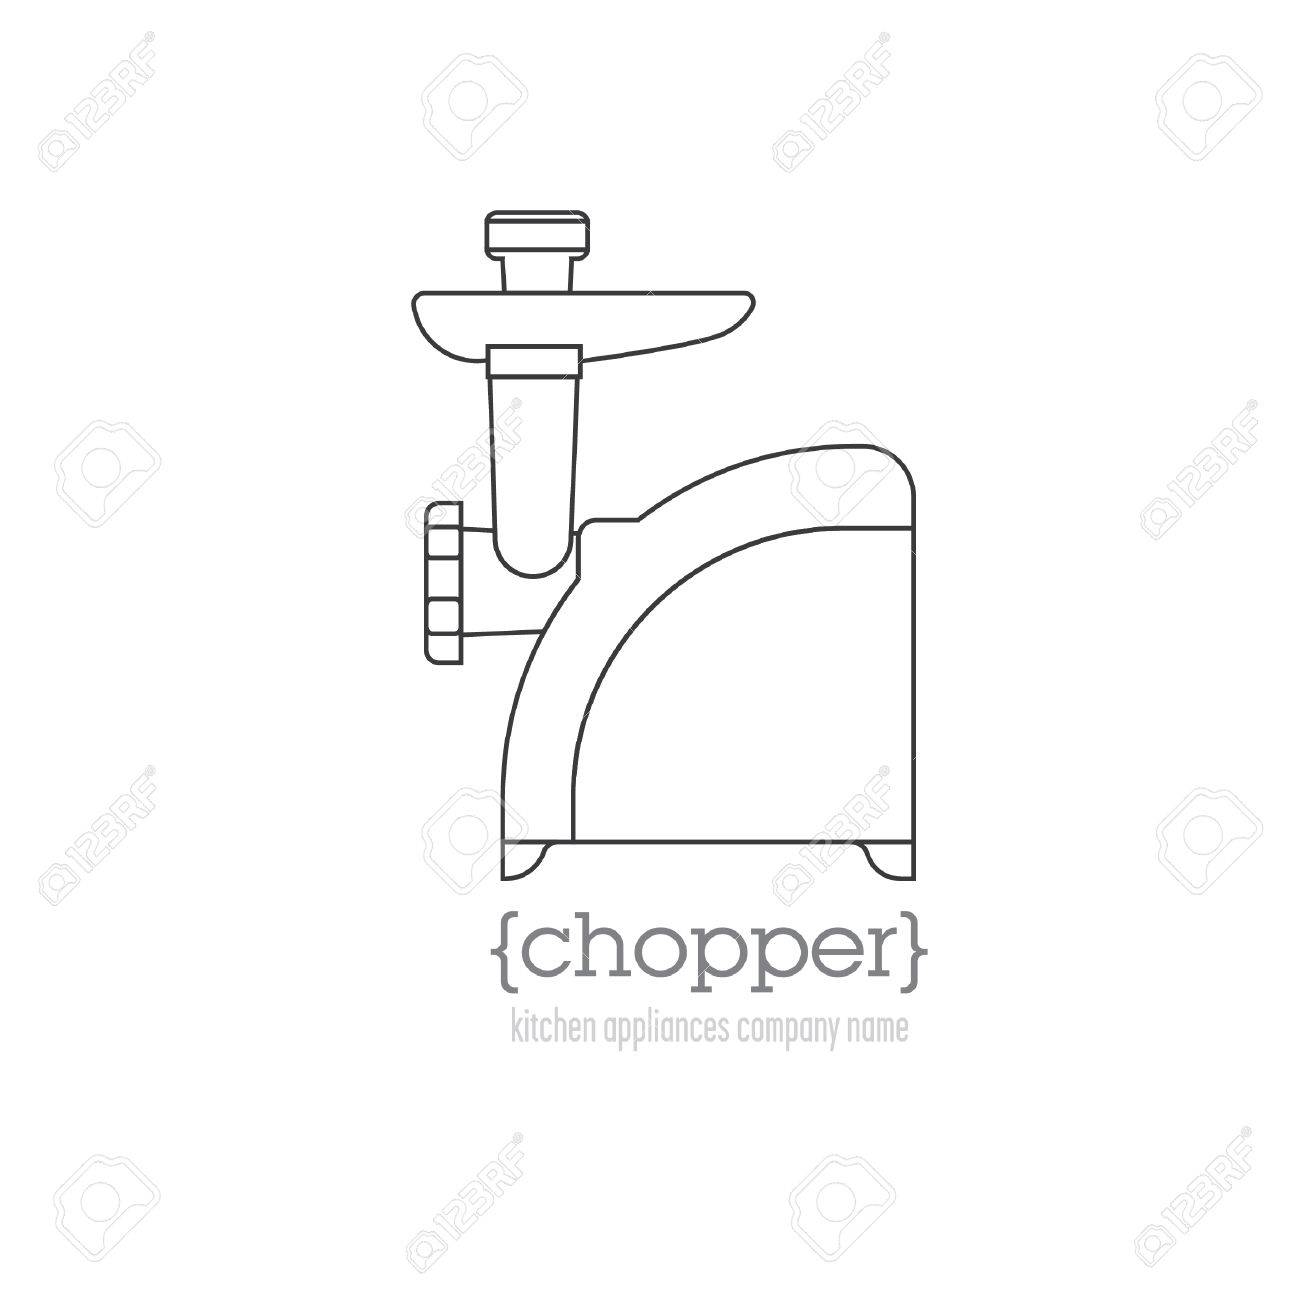 Uncategorized Name Of Kitchen Appliances page template with kitchen appliances mincer space for company name stock vector